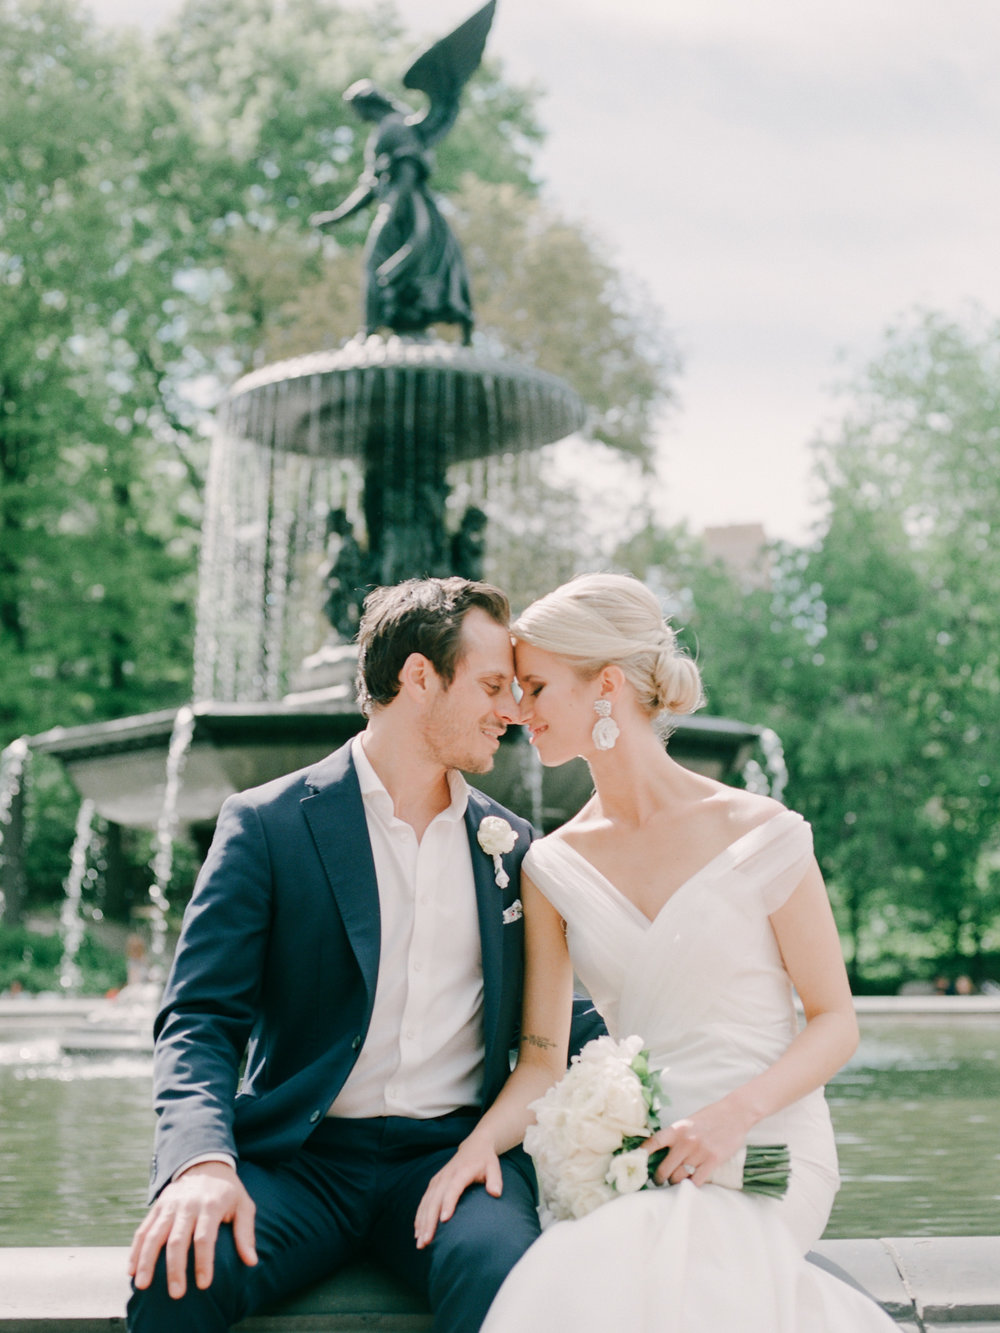 Intimate-NYC_wedding_ by Tanya Isaeva-112.jpg